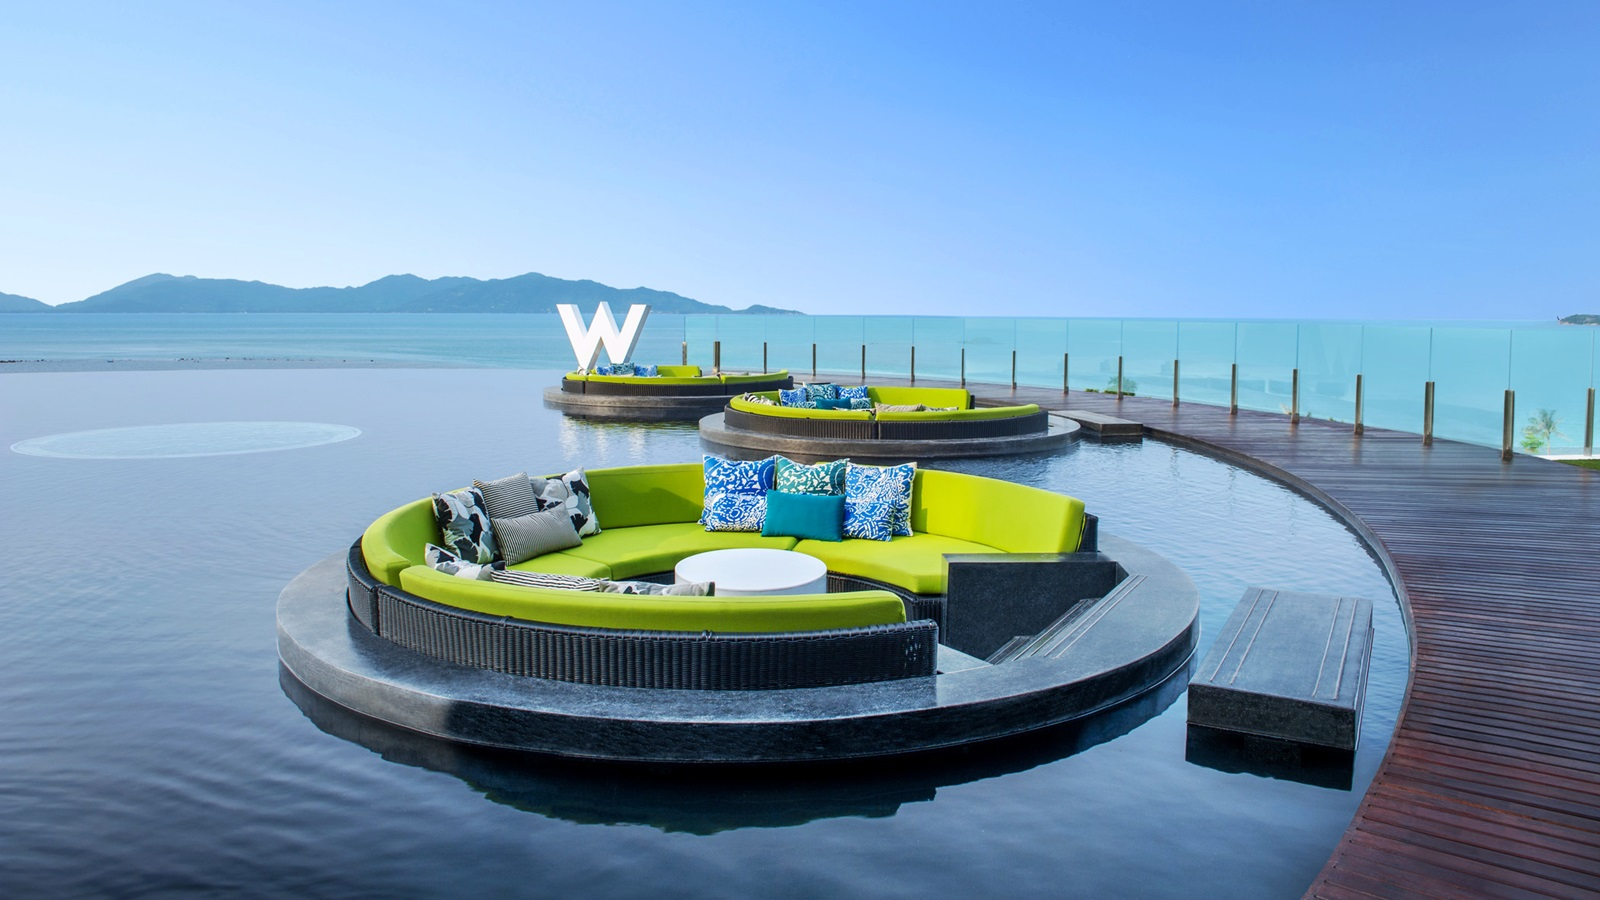 WOOBAR® at W Retreat Koh Samui